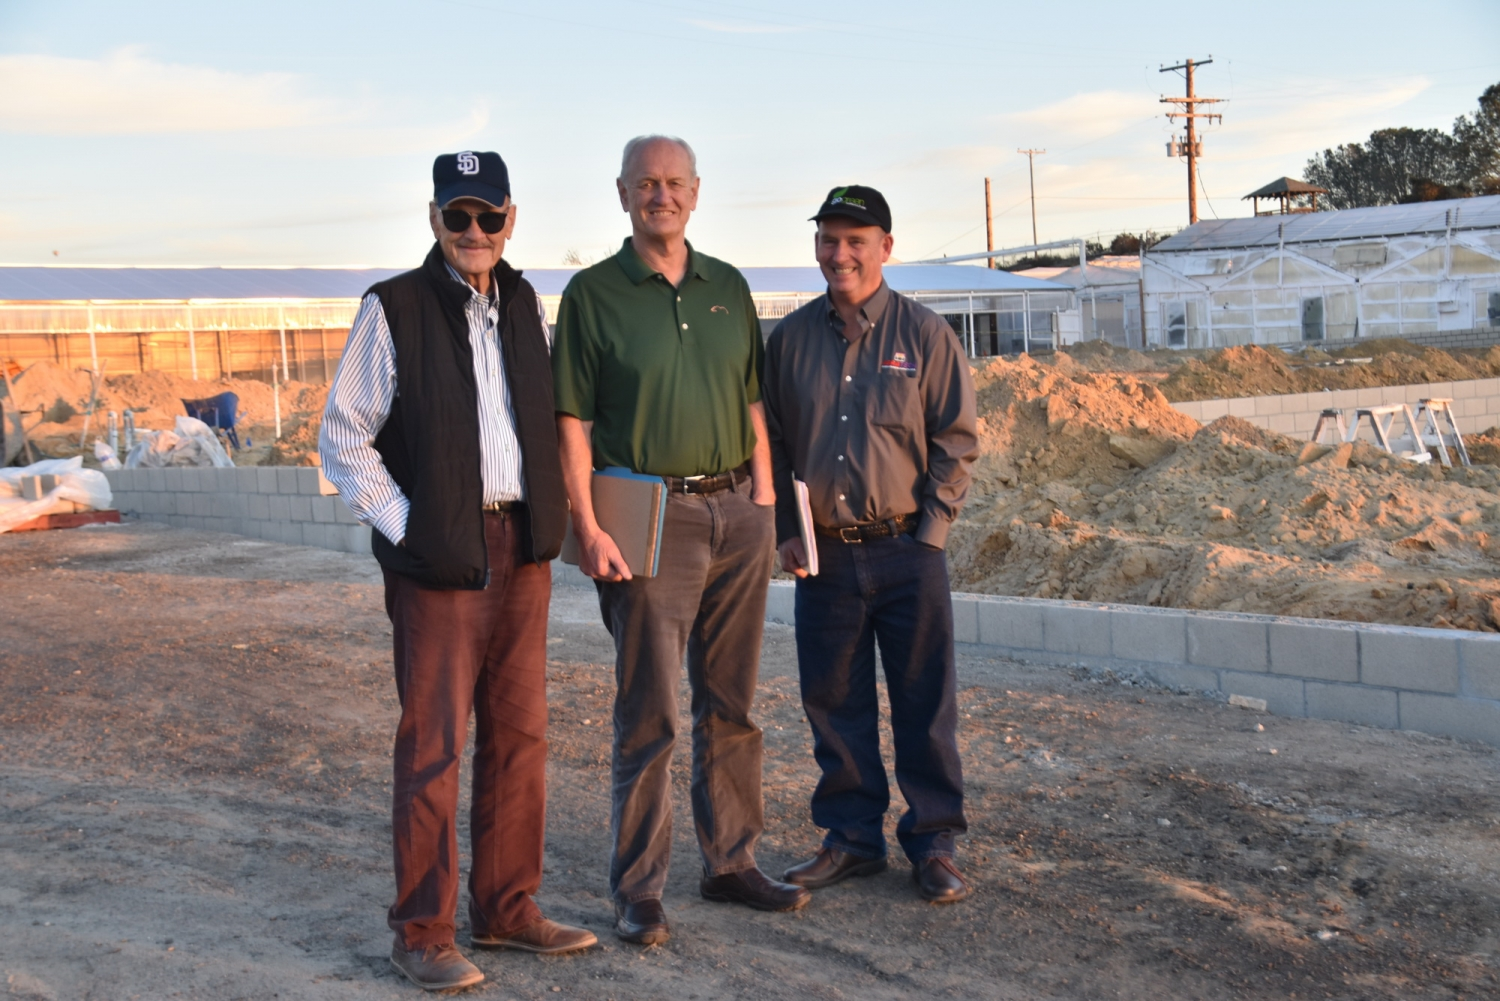 Dempsey Sawyer, John Pound, Jim Bergantz at an early visit to the site.